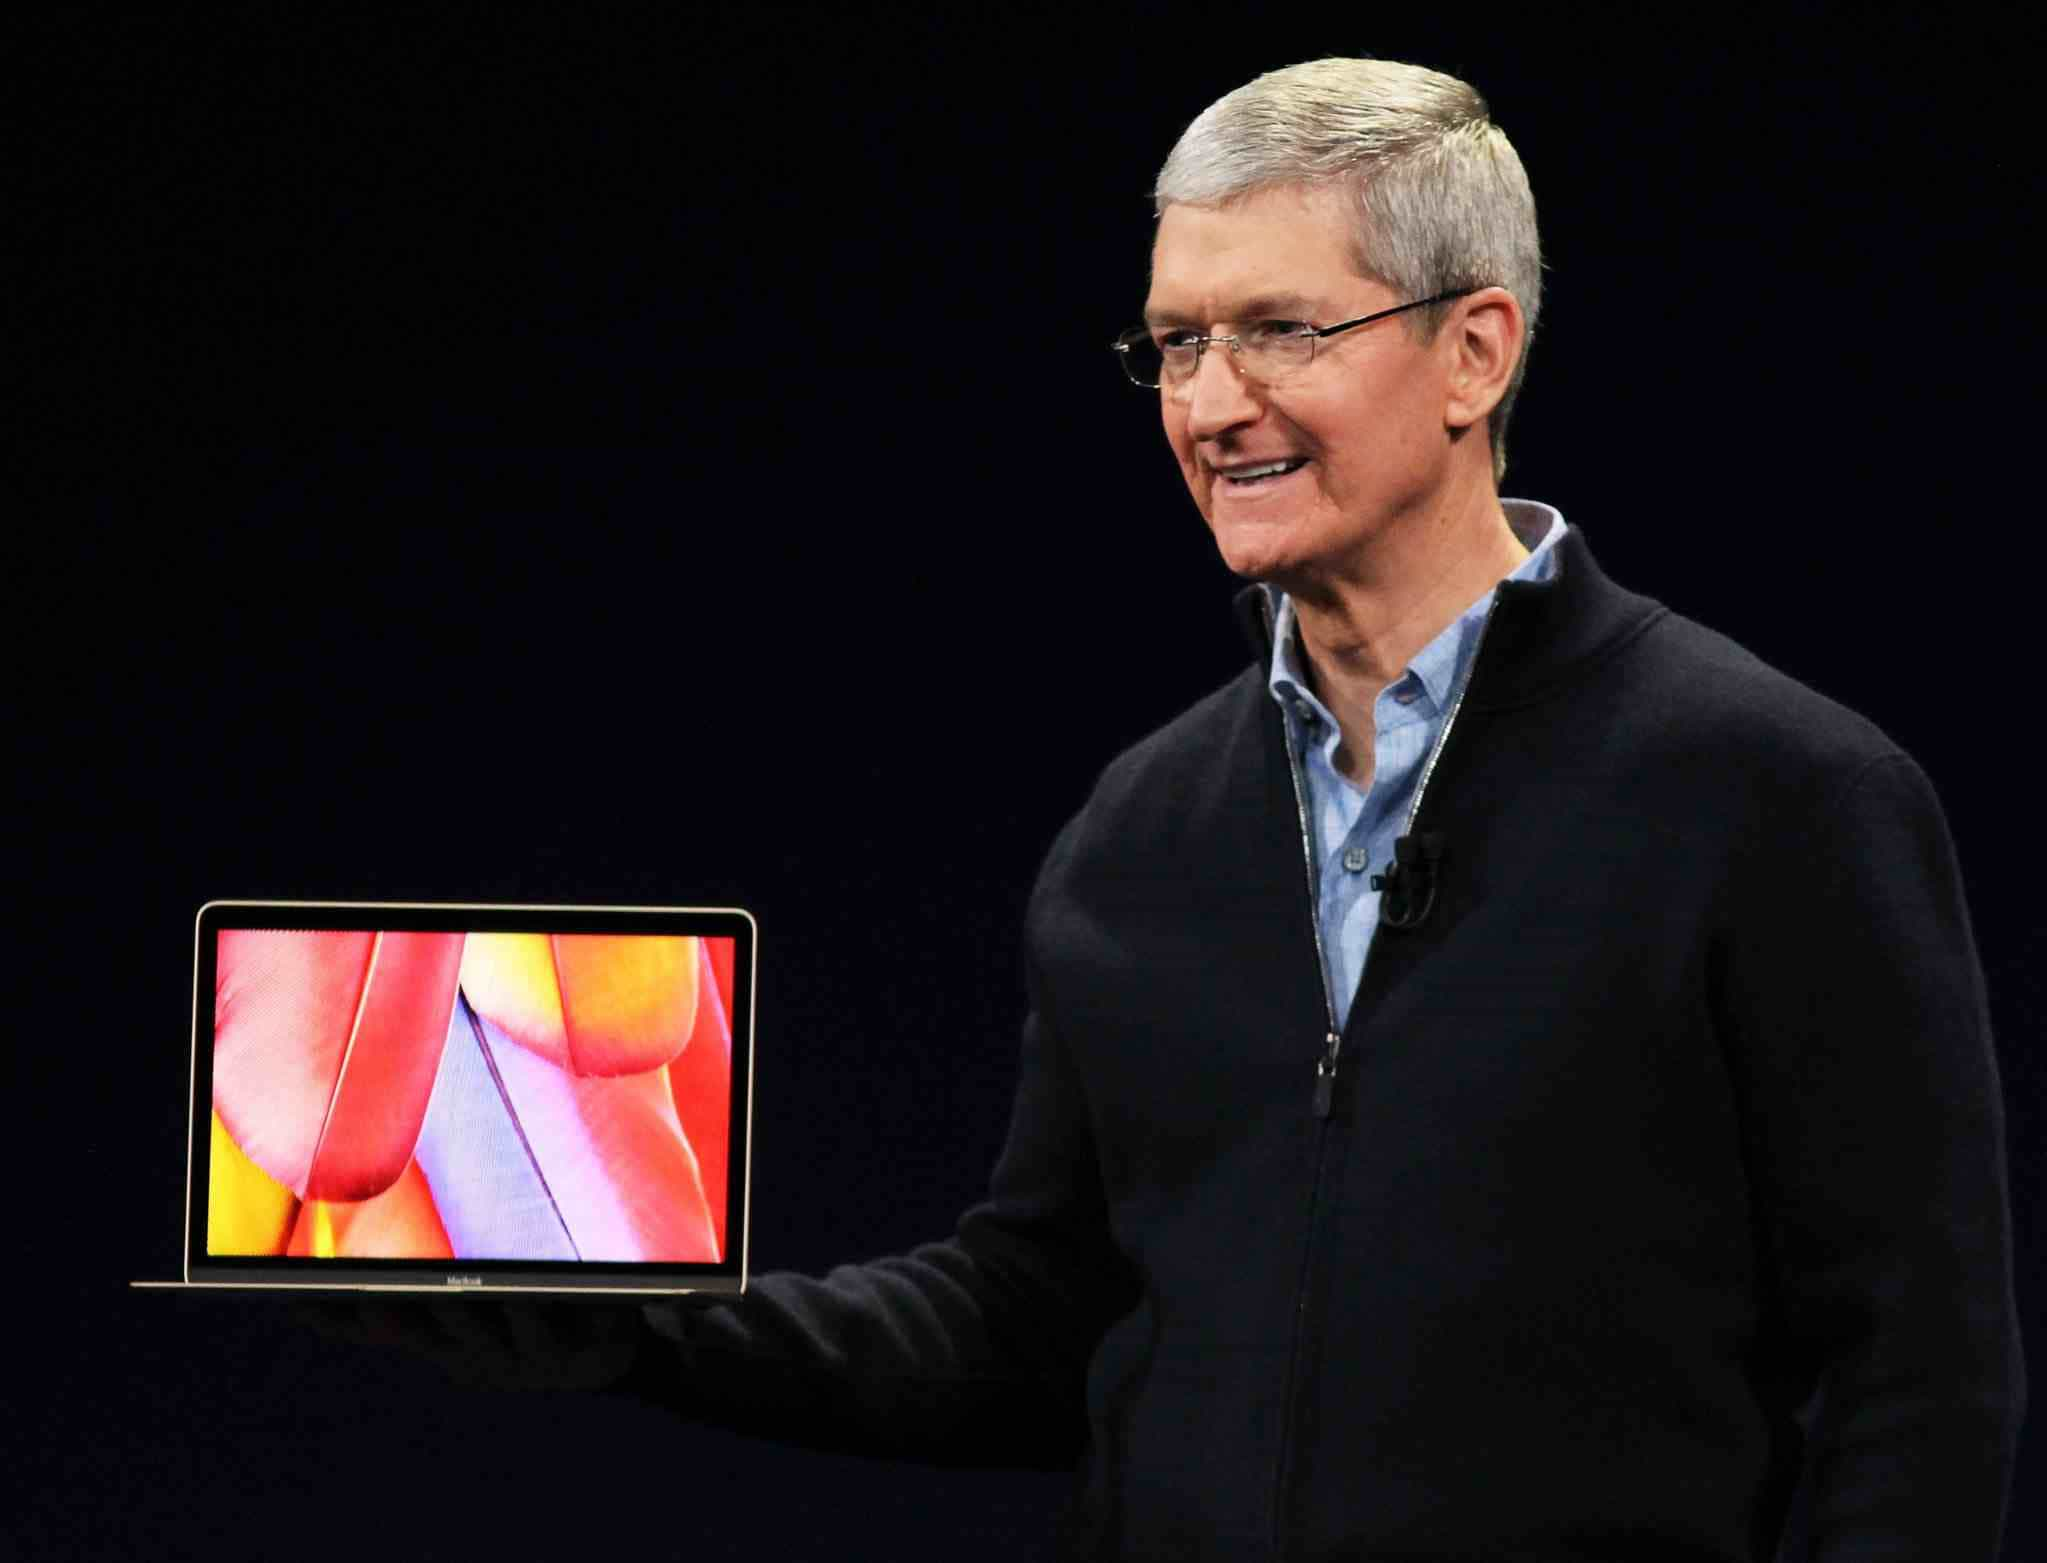 Apple: CEO Tim Cook Says Black Teenagers Getting Ejected From Store Is 'Unacceptable'